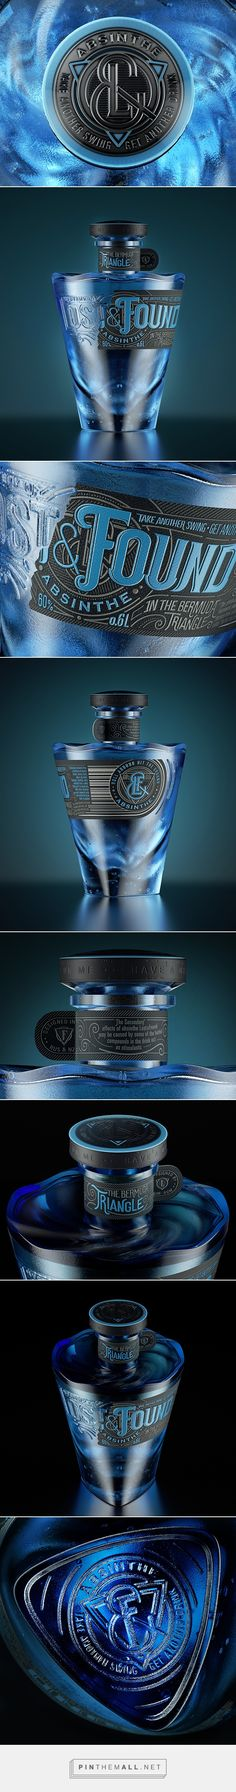 Lost&Found | Absinthe on Behance curated by Packaging Diva PD. How pretty is this absinthe packaging?